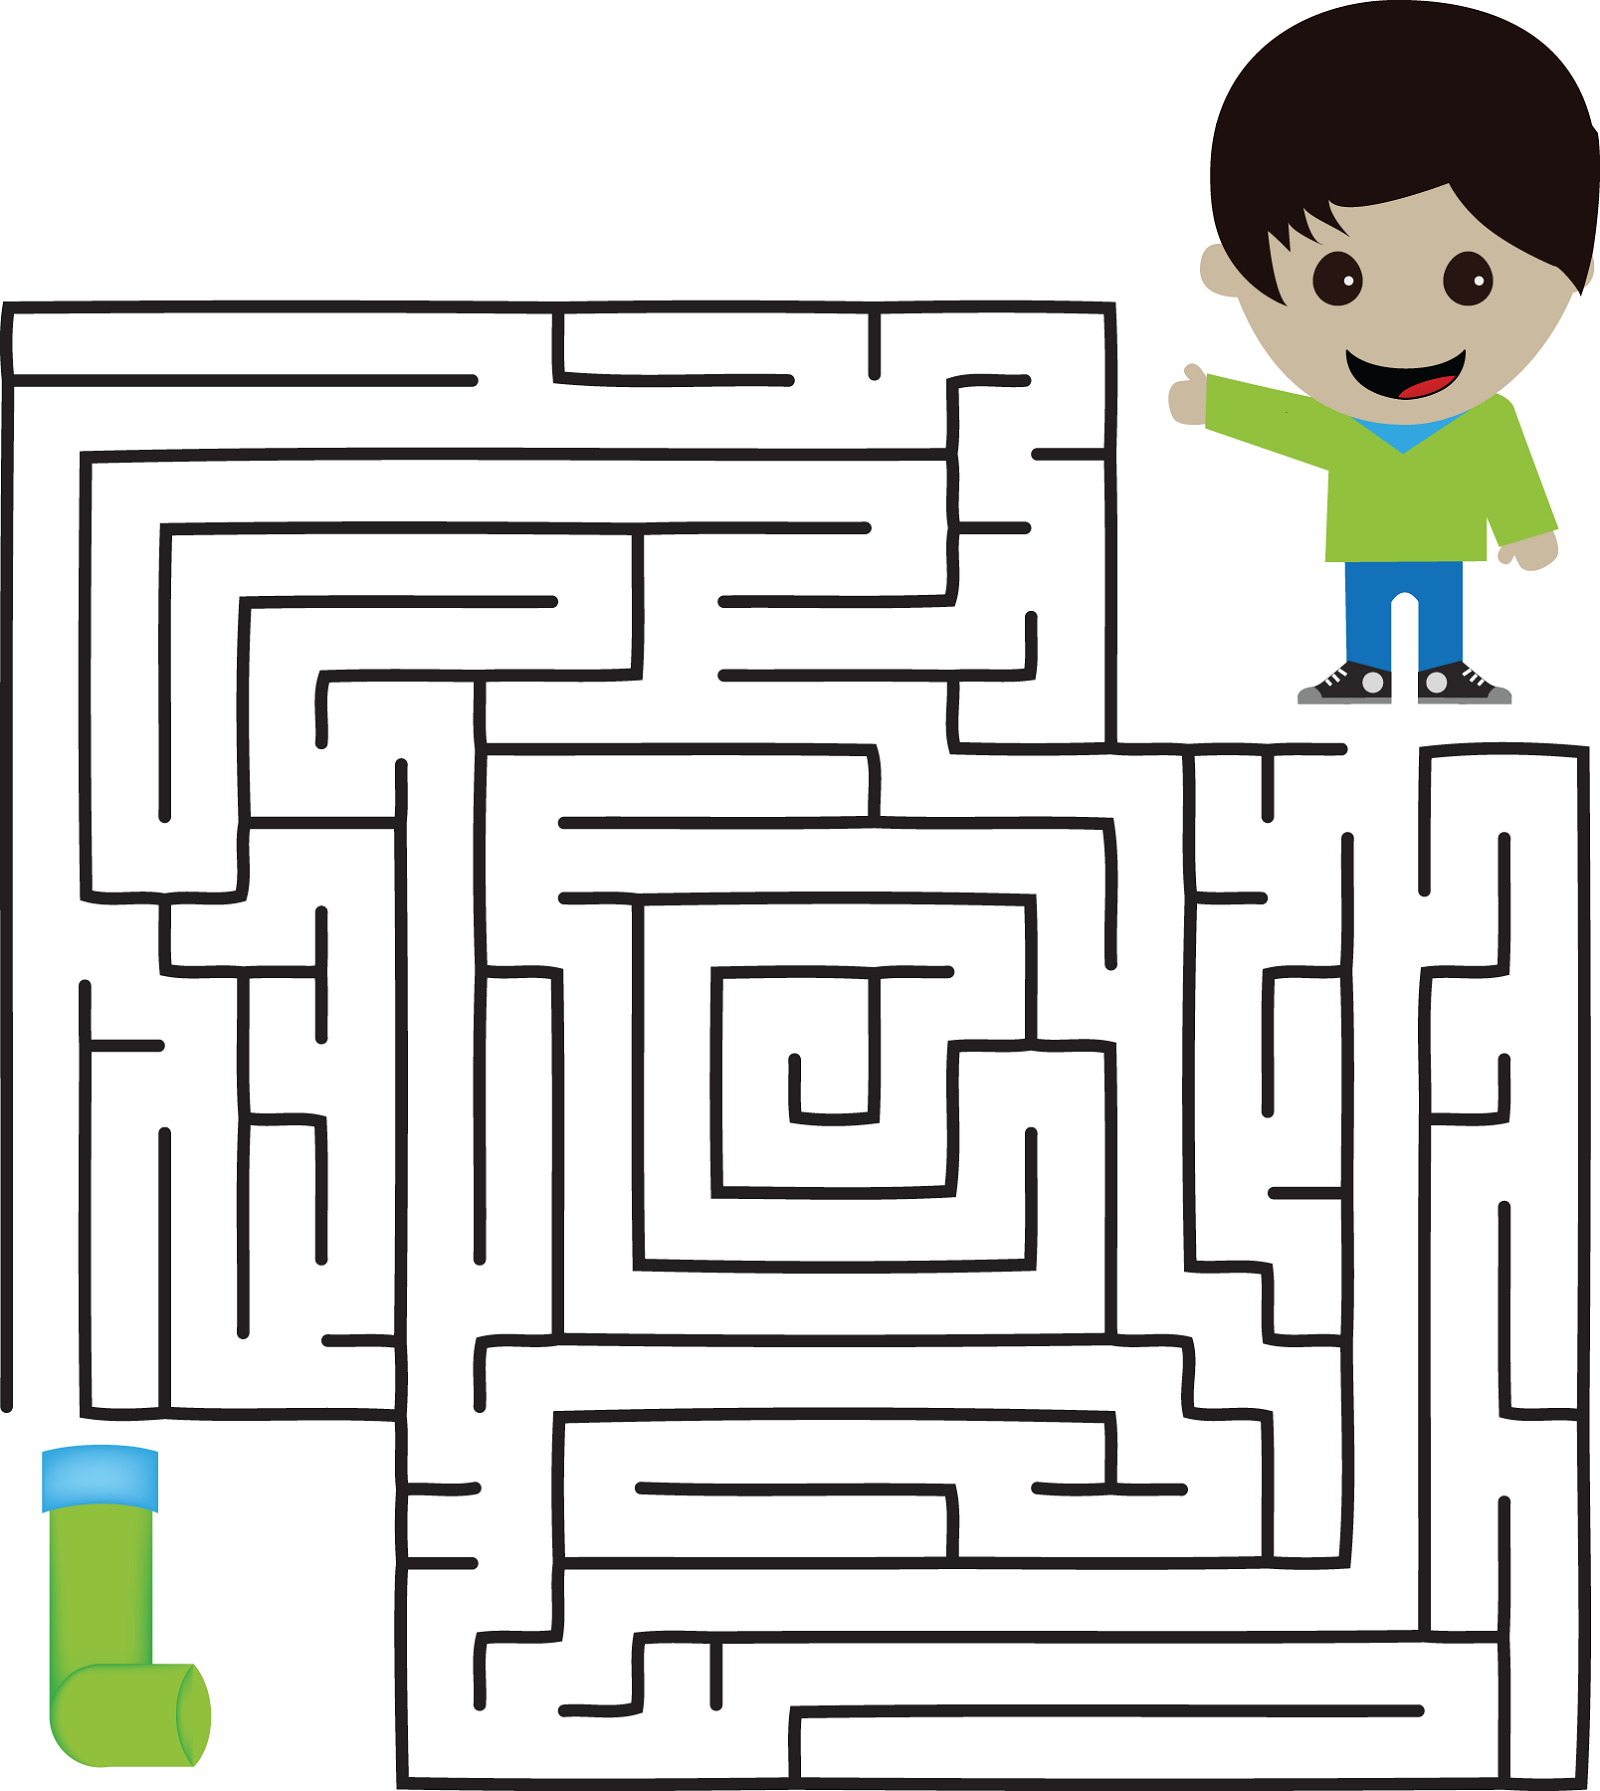 fun mazes for kids page